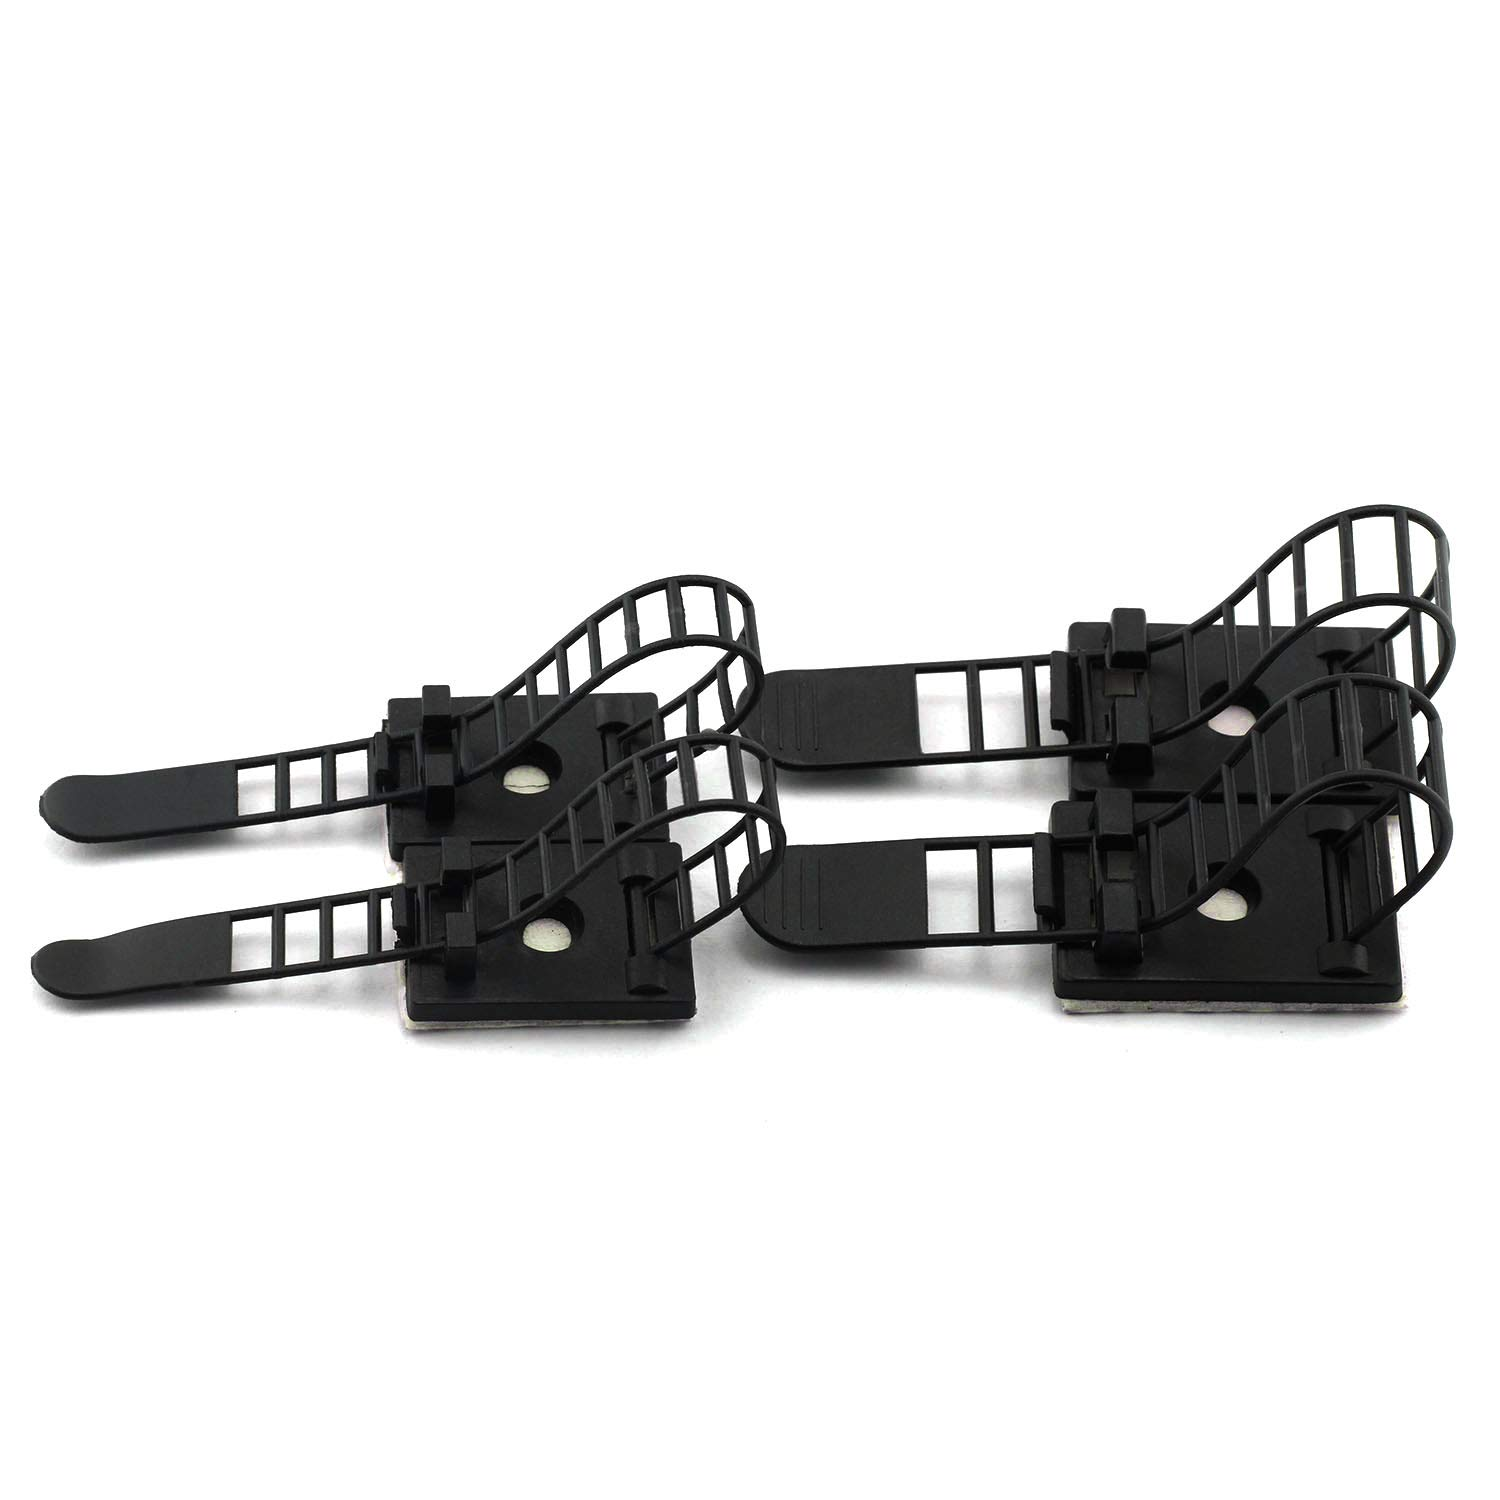 50pcs 91mm Adjustable Self Adhesive Cable Clips Wire Organizer with Optional Screw Mount for Electric Wiring Accessories Cable Clamp Clips Fixed Fasten Cable Tie Black Magic/&Shell